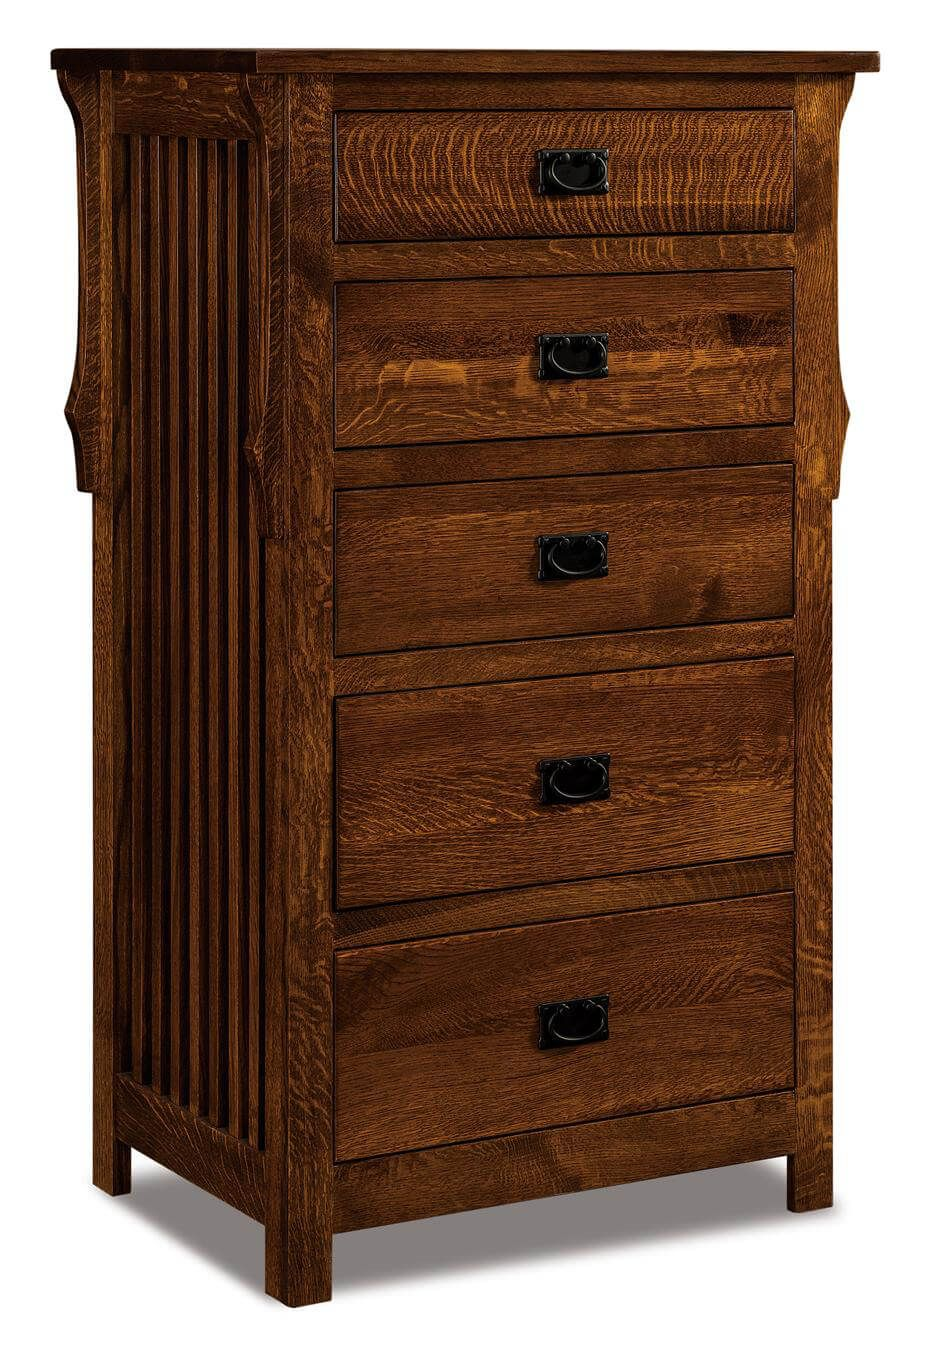 Almeda Narrow Chest of Drawers